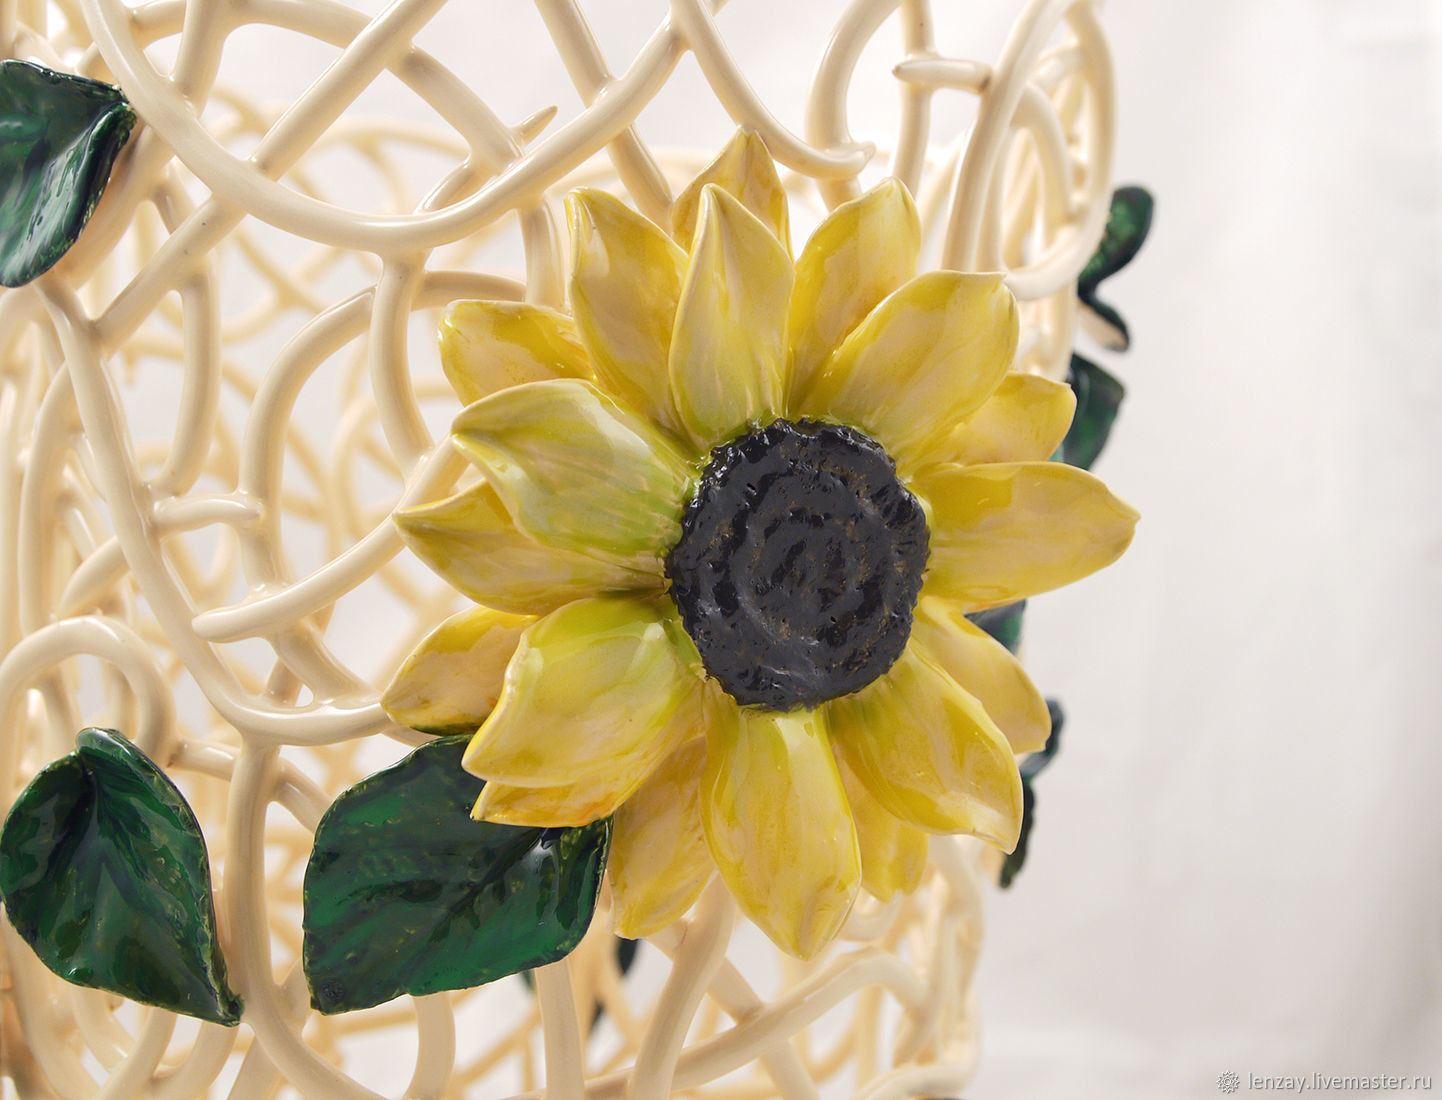 vase of sunflowers of wicker vase sunflower cone height 25 cm shop online on inside height 25 cm ceramic vase from the collection of sunflowers truncated cone height 25 cm